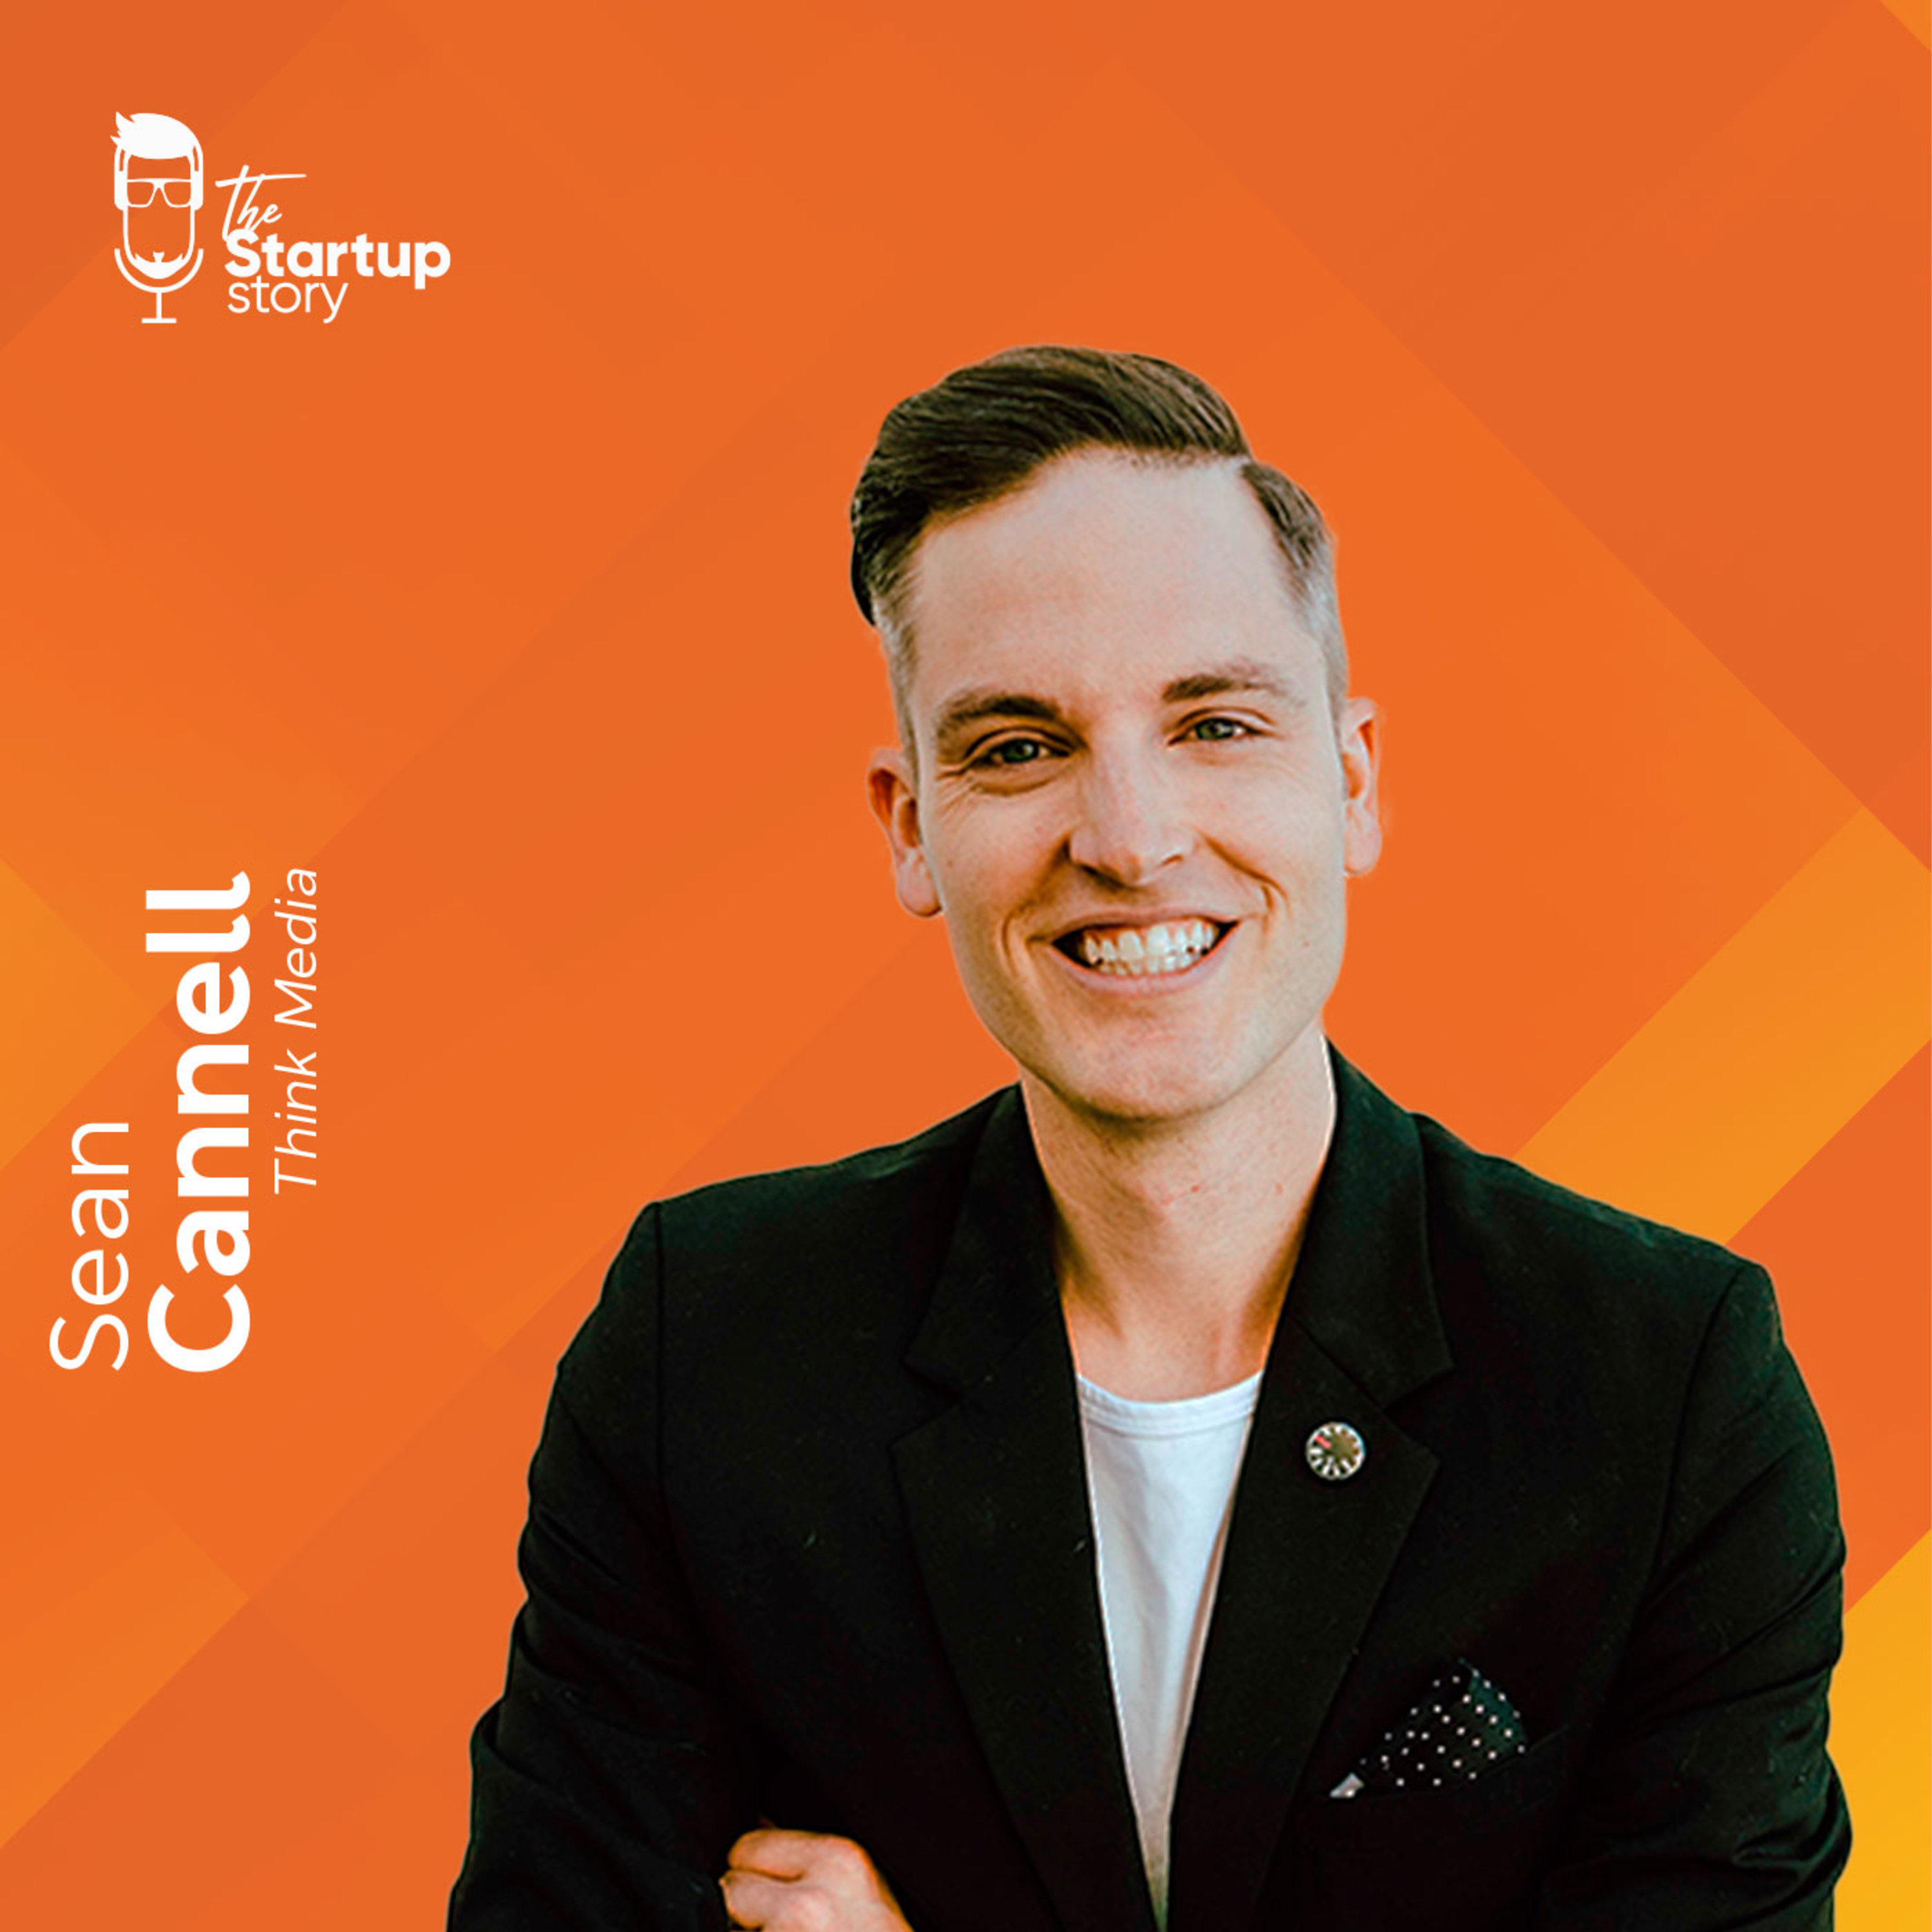 Sean Cannell, founder of Think Media